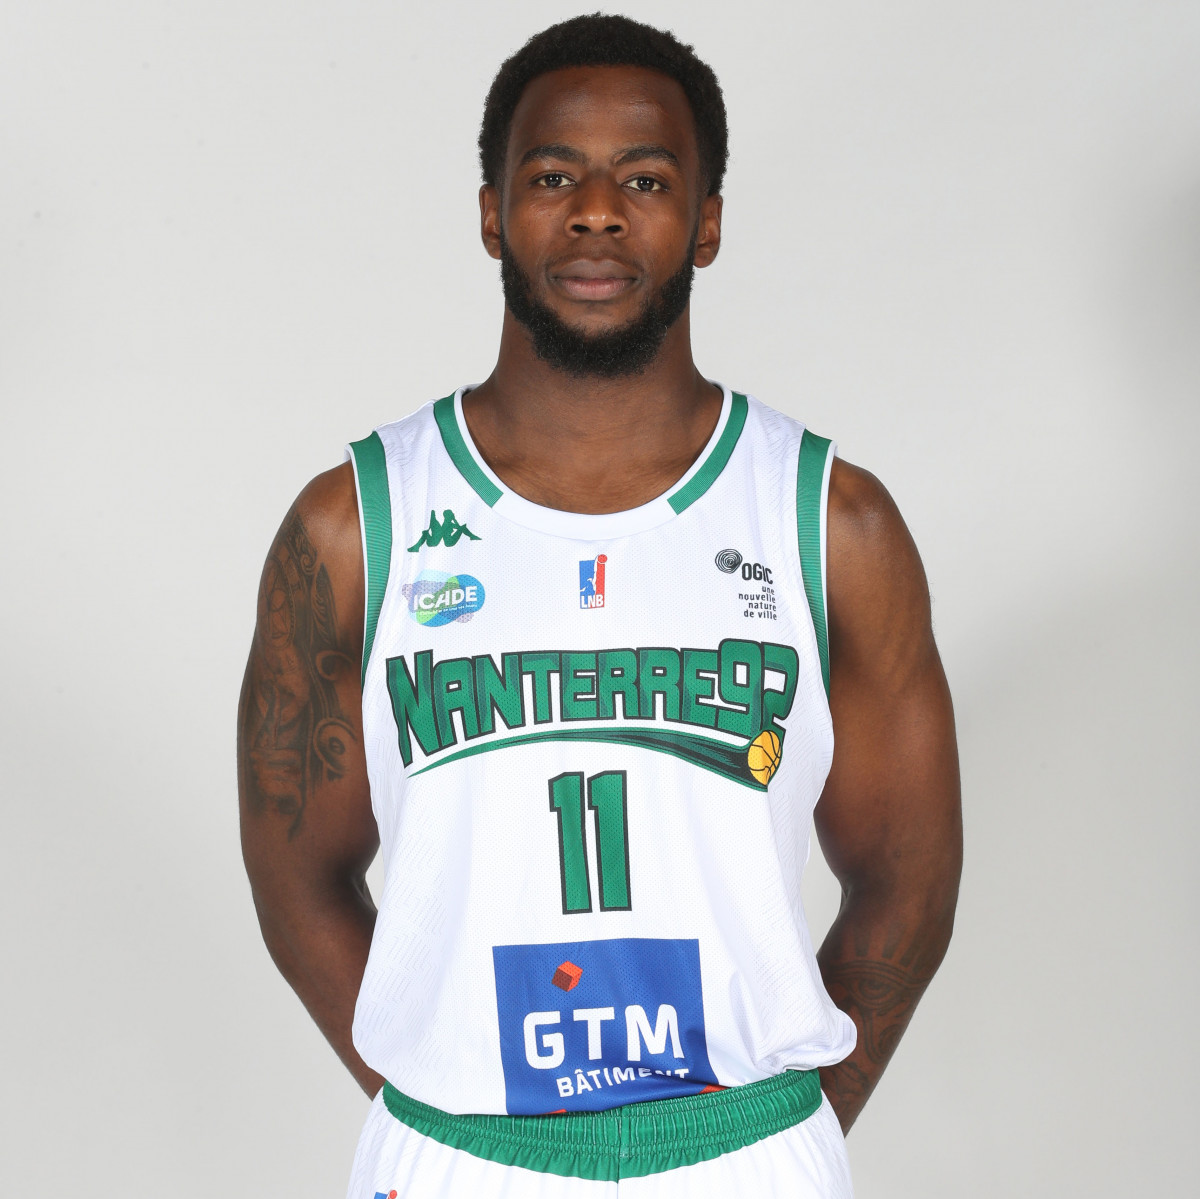 Photo of Kenny Chery, 2019-2020 season